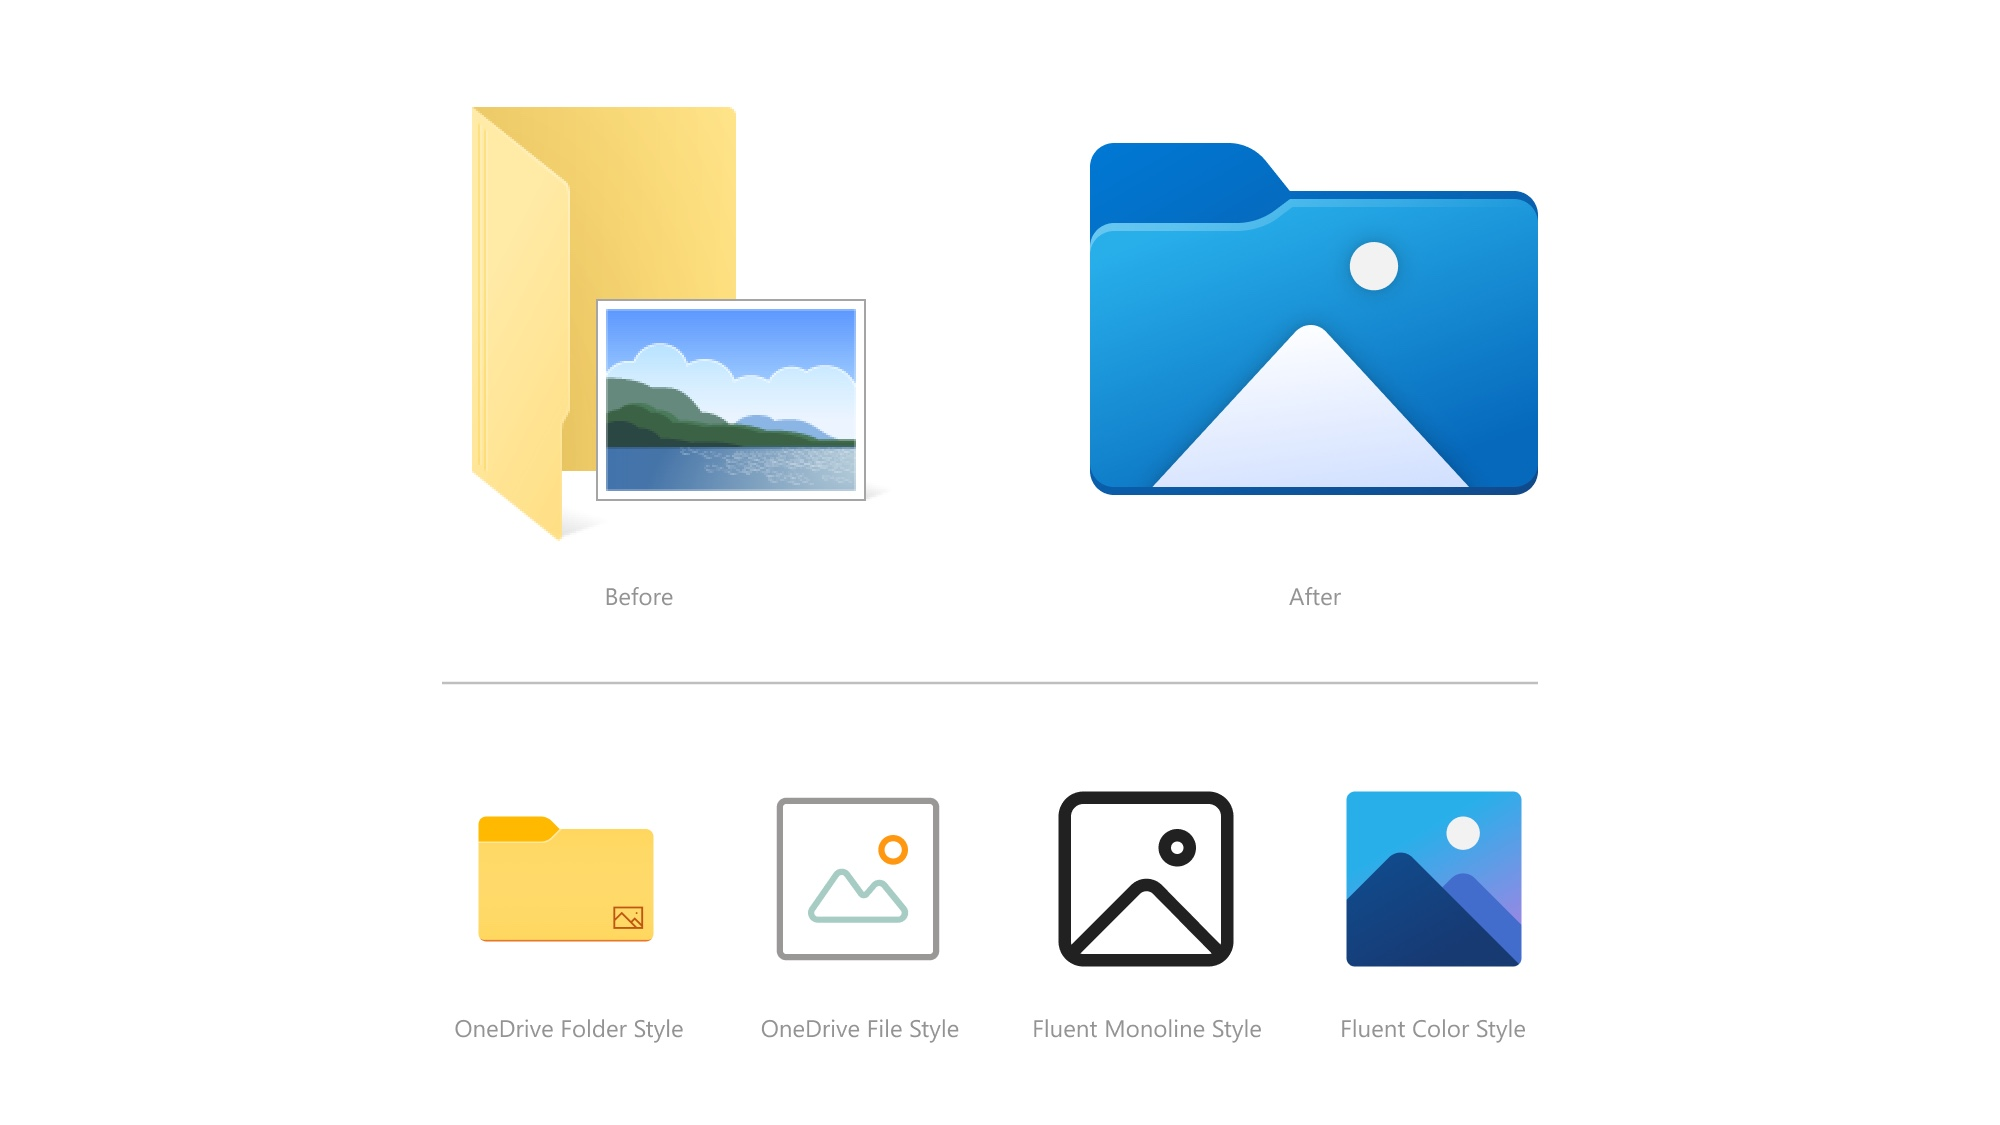 Windows 10 changes new icons